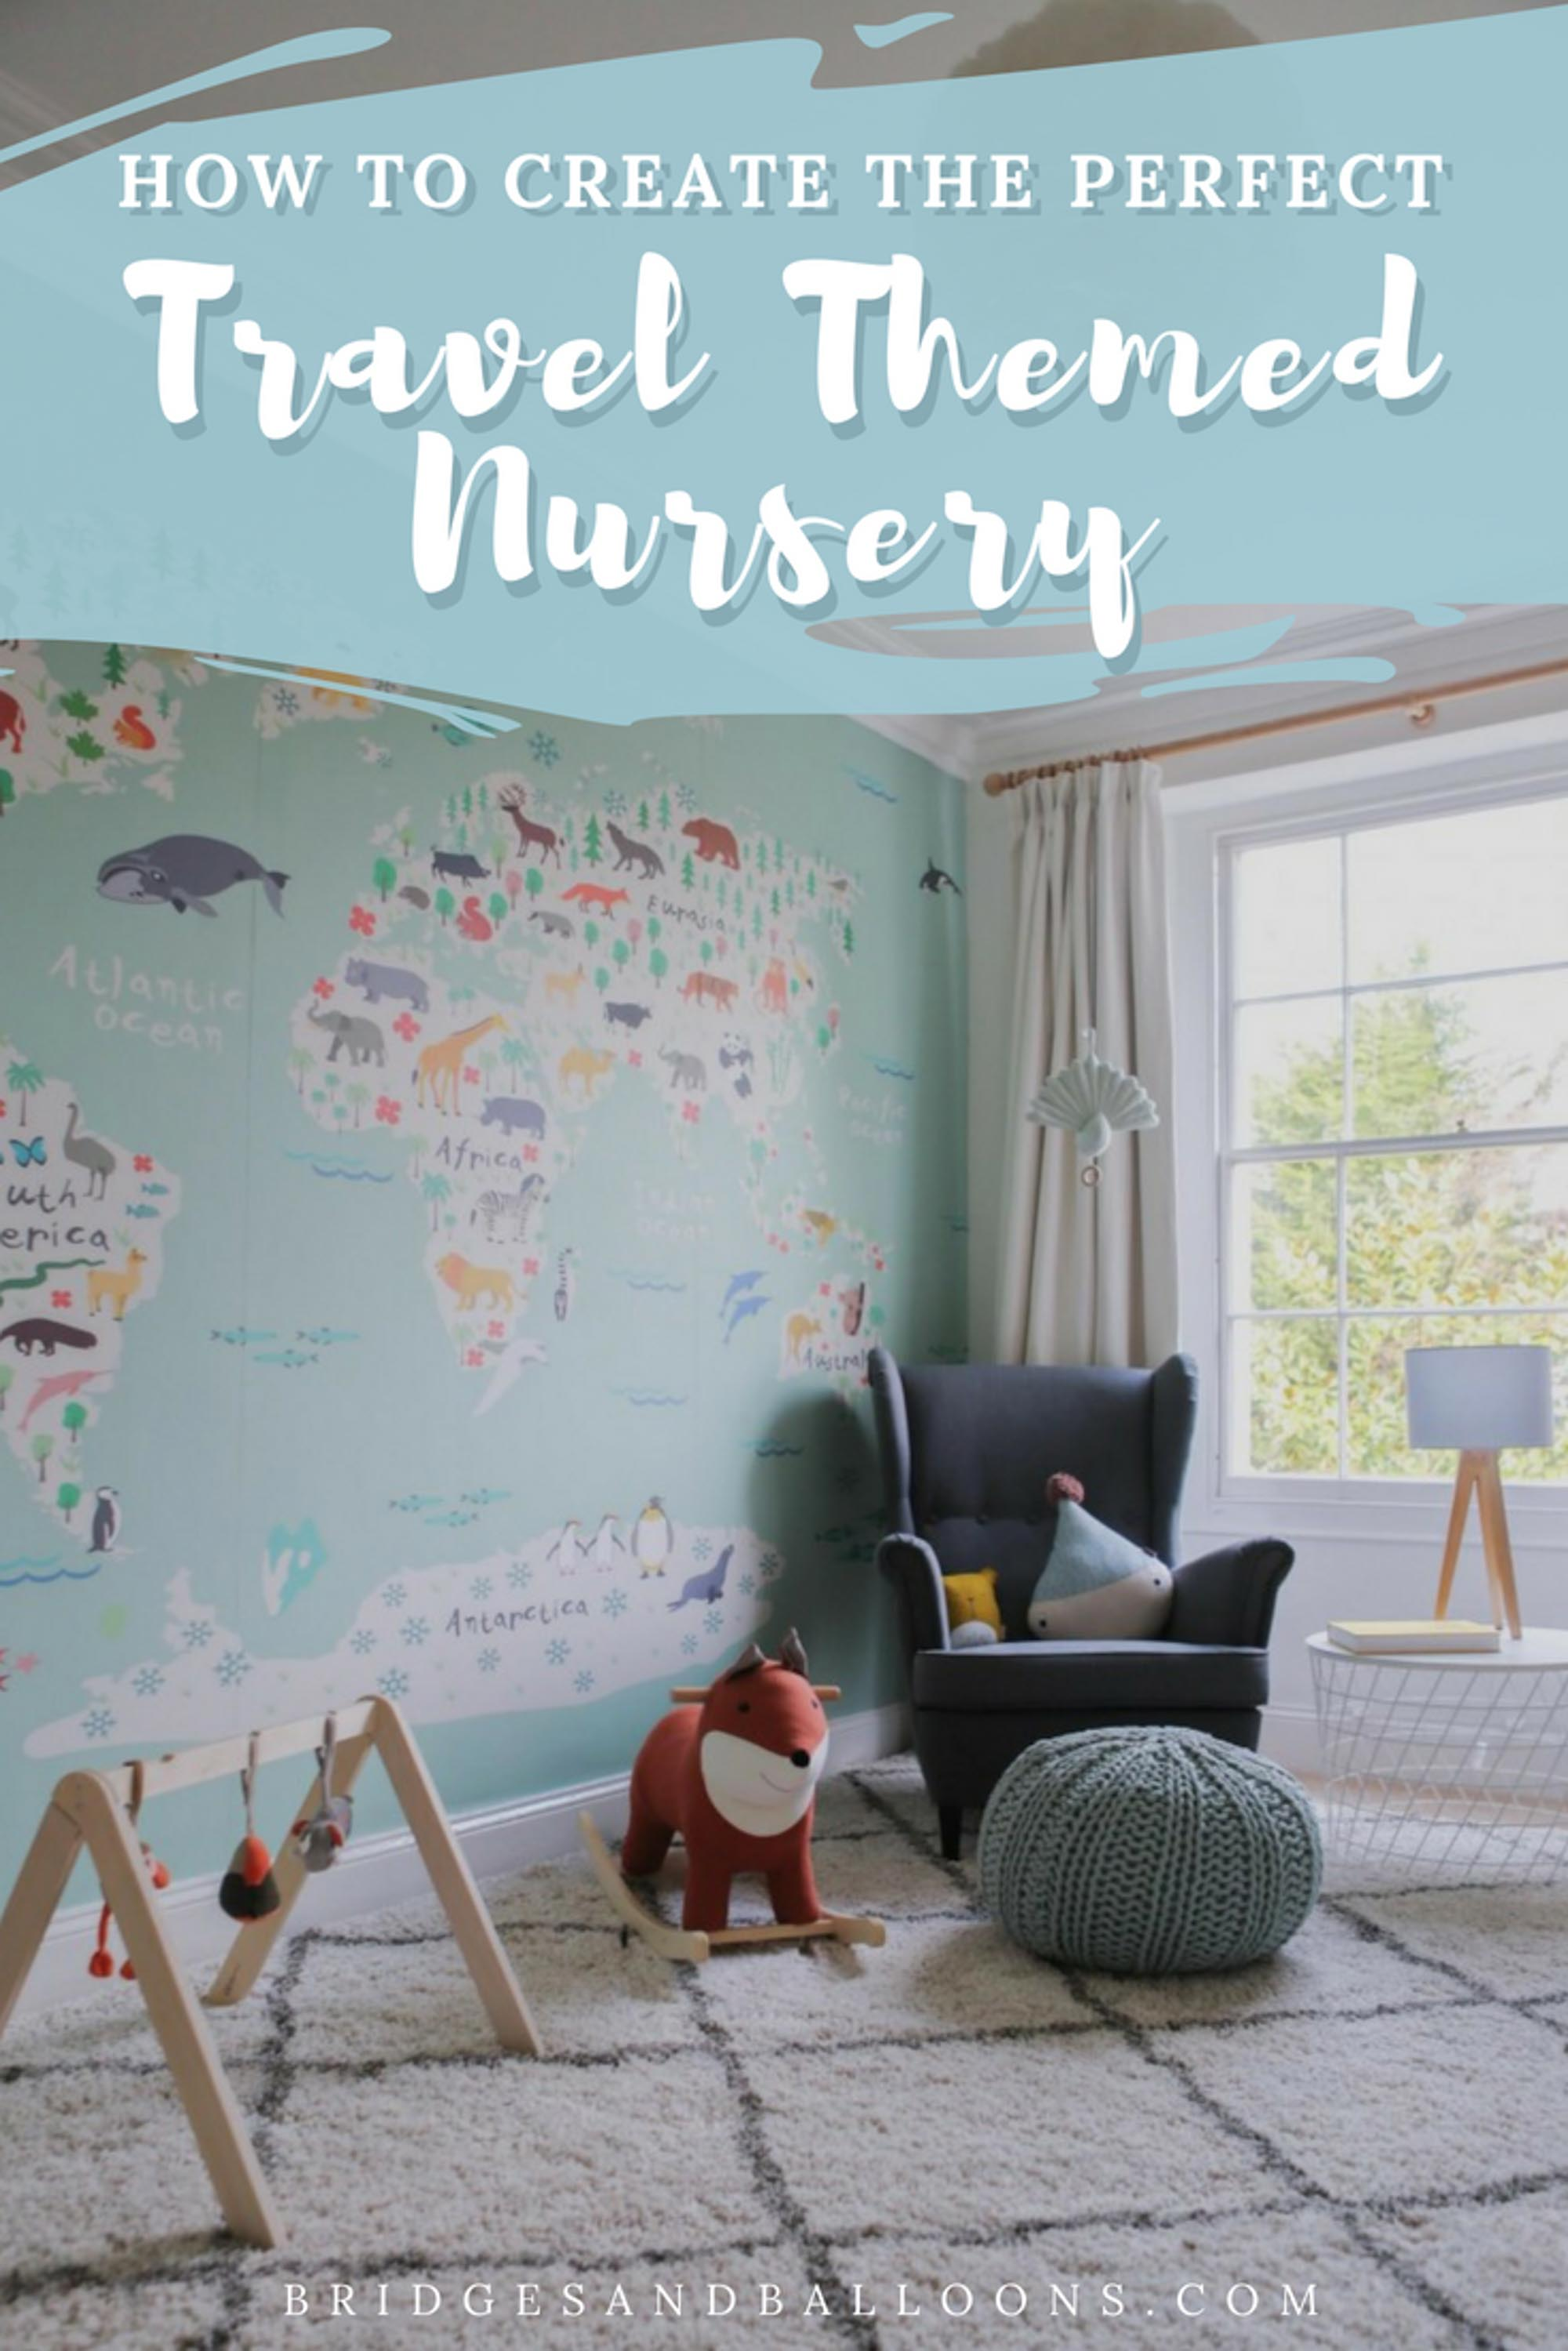 How to create a travel themed nursery